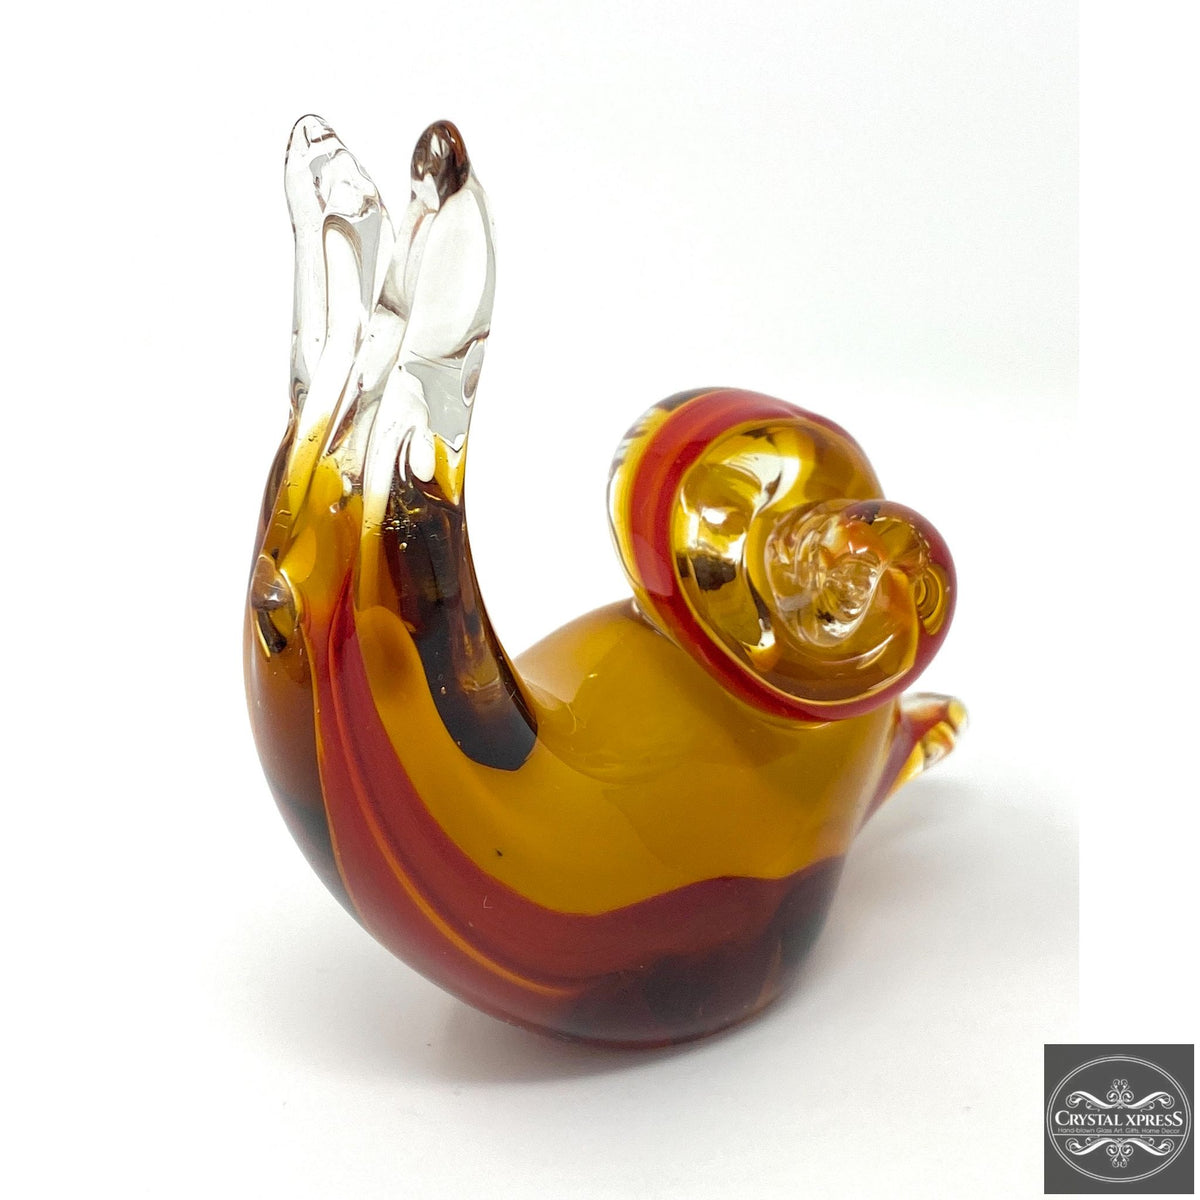 "New 4.5"" Hand Blown Glass Cute Snail Figurine Sculpture Red and Yellow Stained Glass ColorCrystal Xpress"